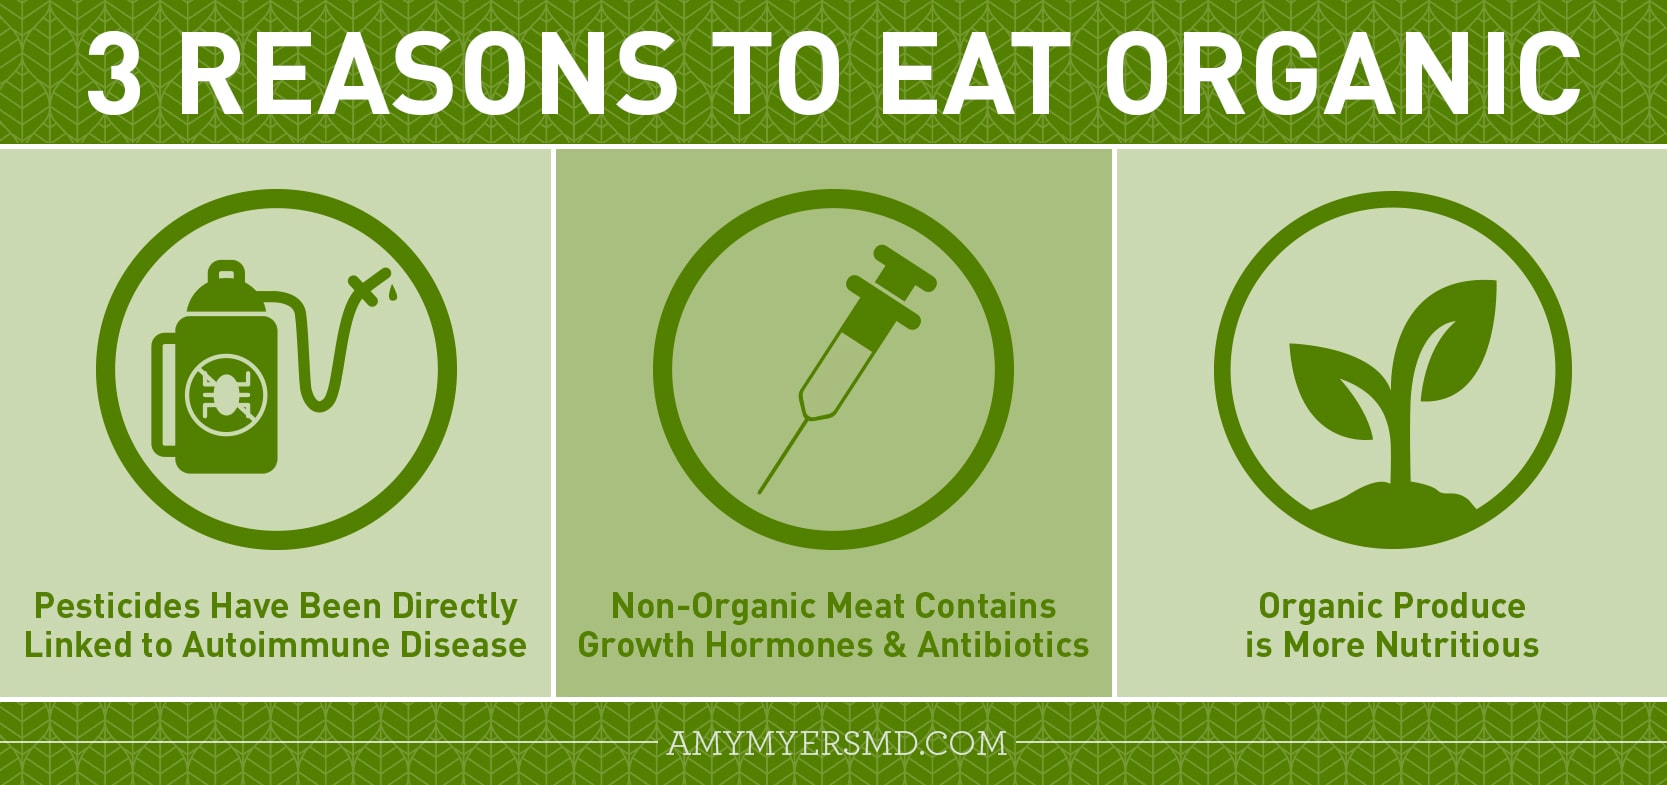 3 Reasons to Eat Organic - Infographic - Amy Myers MD